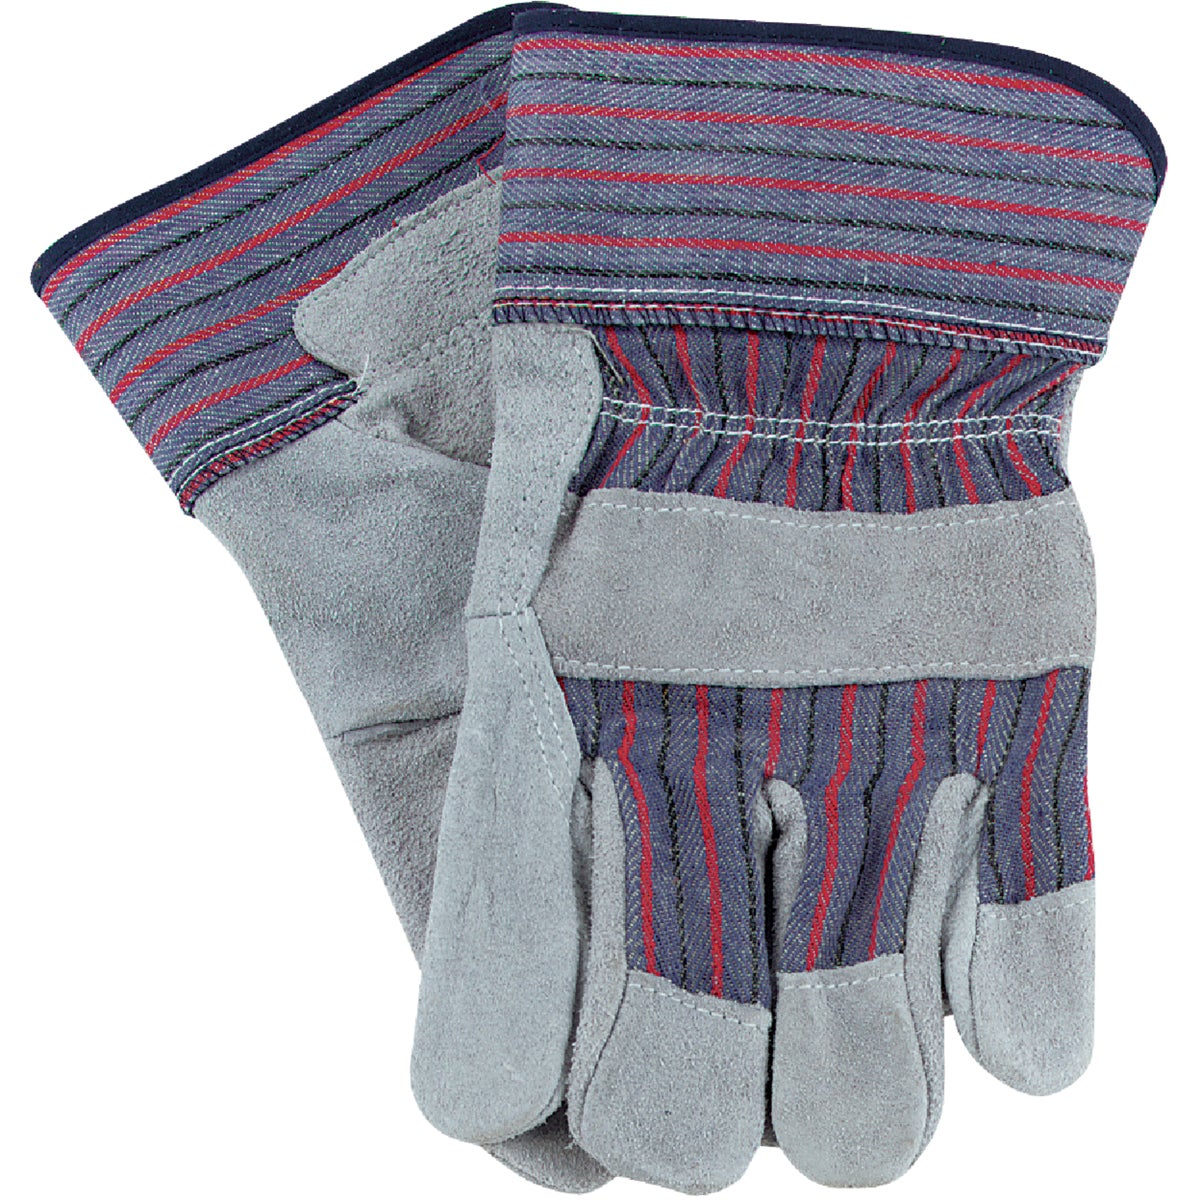 XL MENS LTHR PALM GLOVE - 728430 by Do it Best